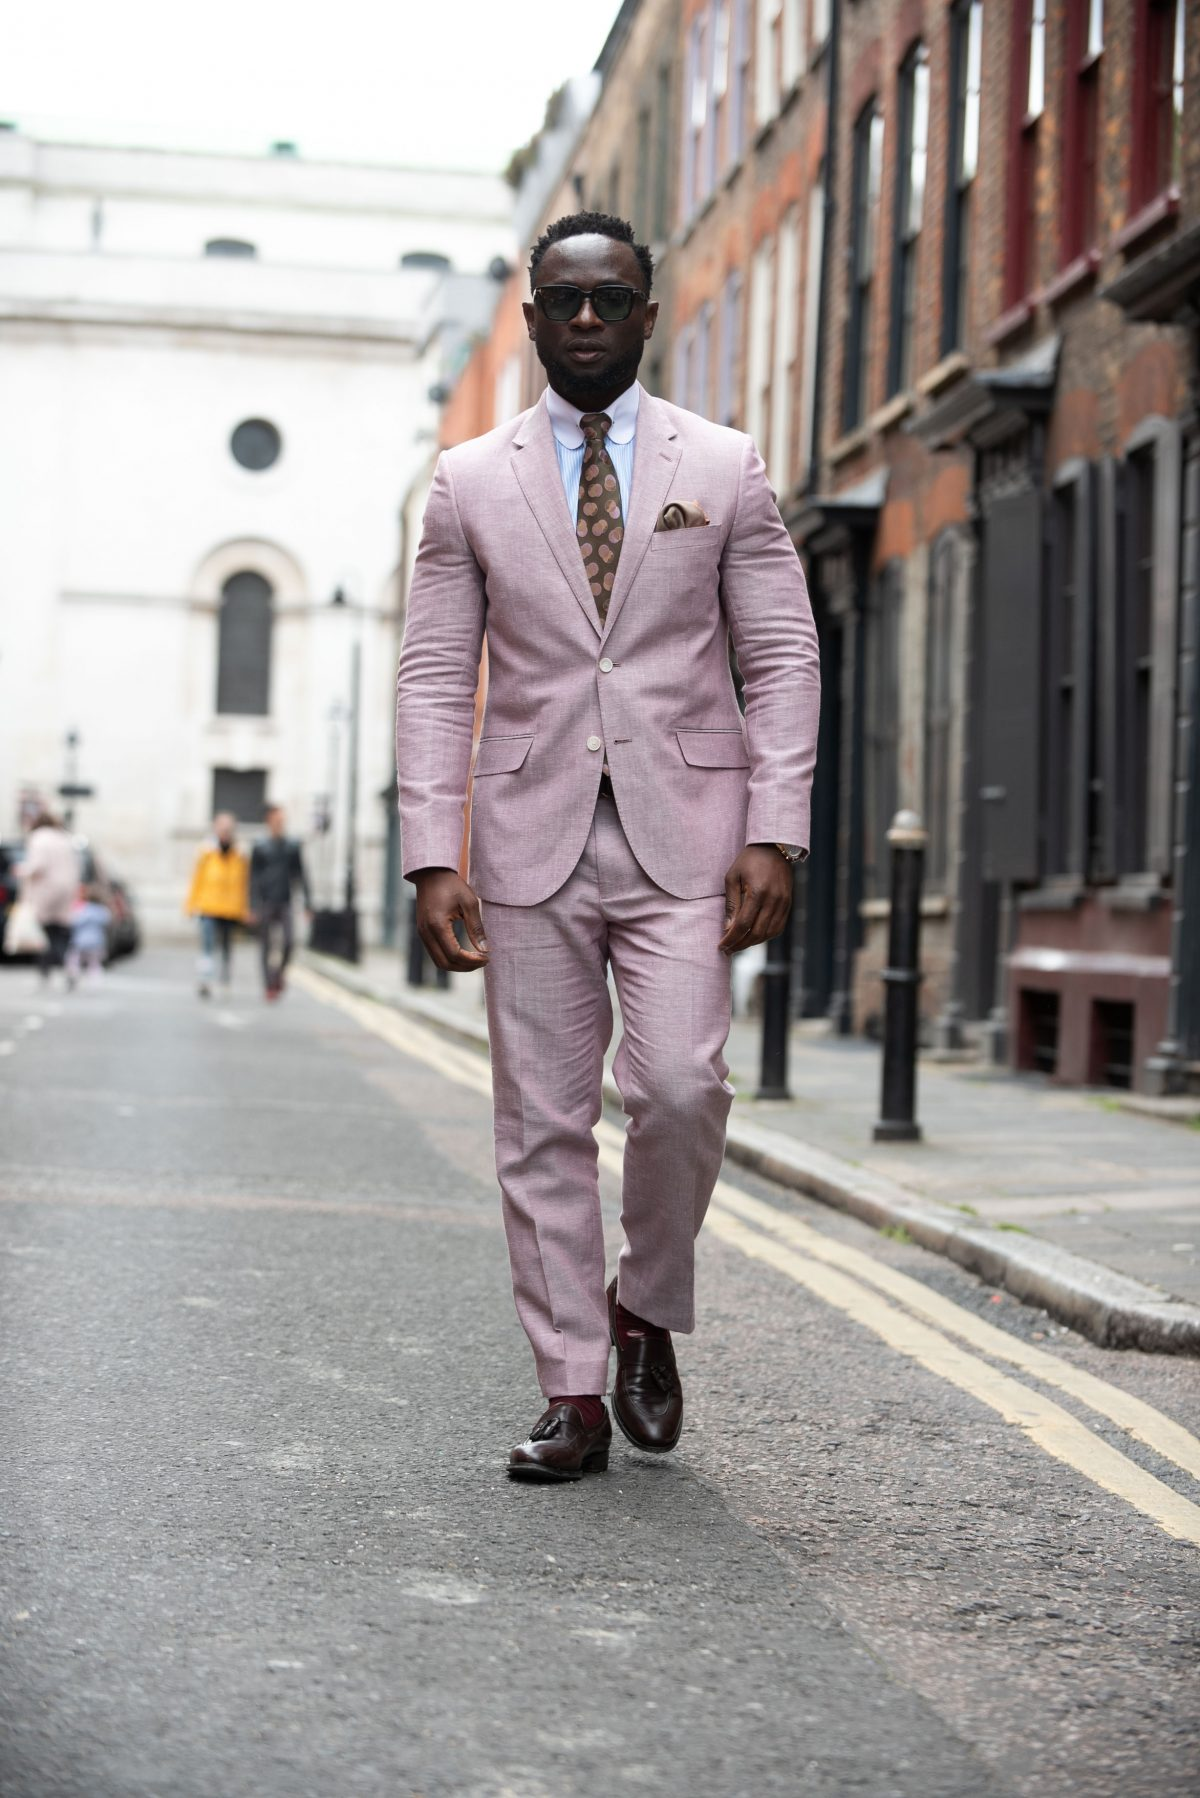 "<span class=""hot"">Hot <i class=""fa fa-bolt""></i></span> Street style @ men's fashion week 